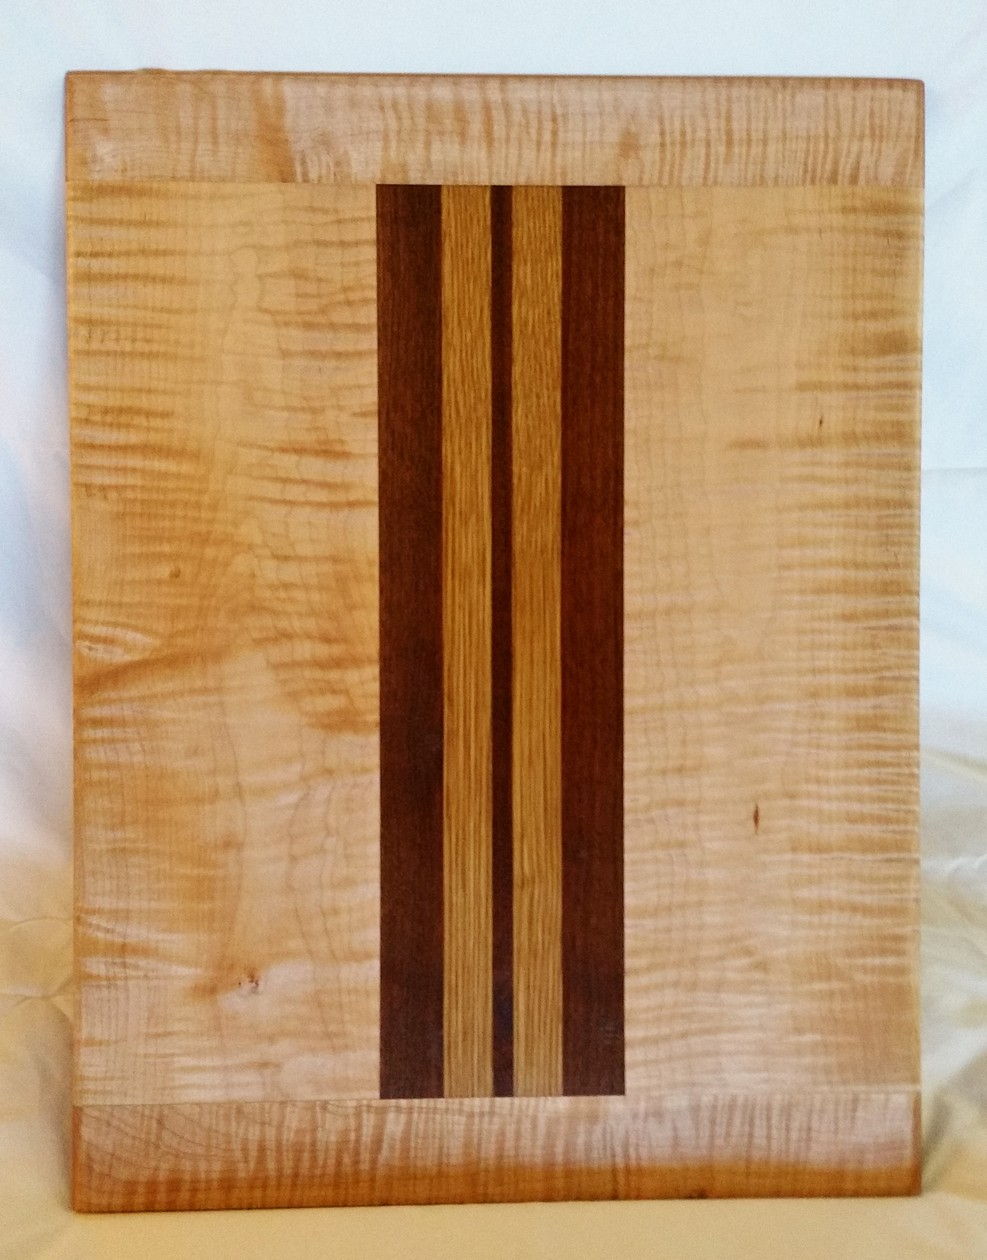 Stunning curly maple is paired with black walnut and white oak to create this captivating serving board